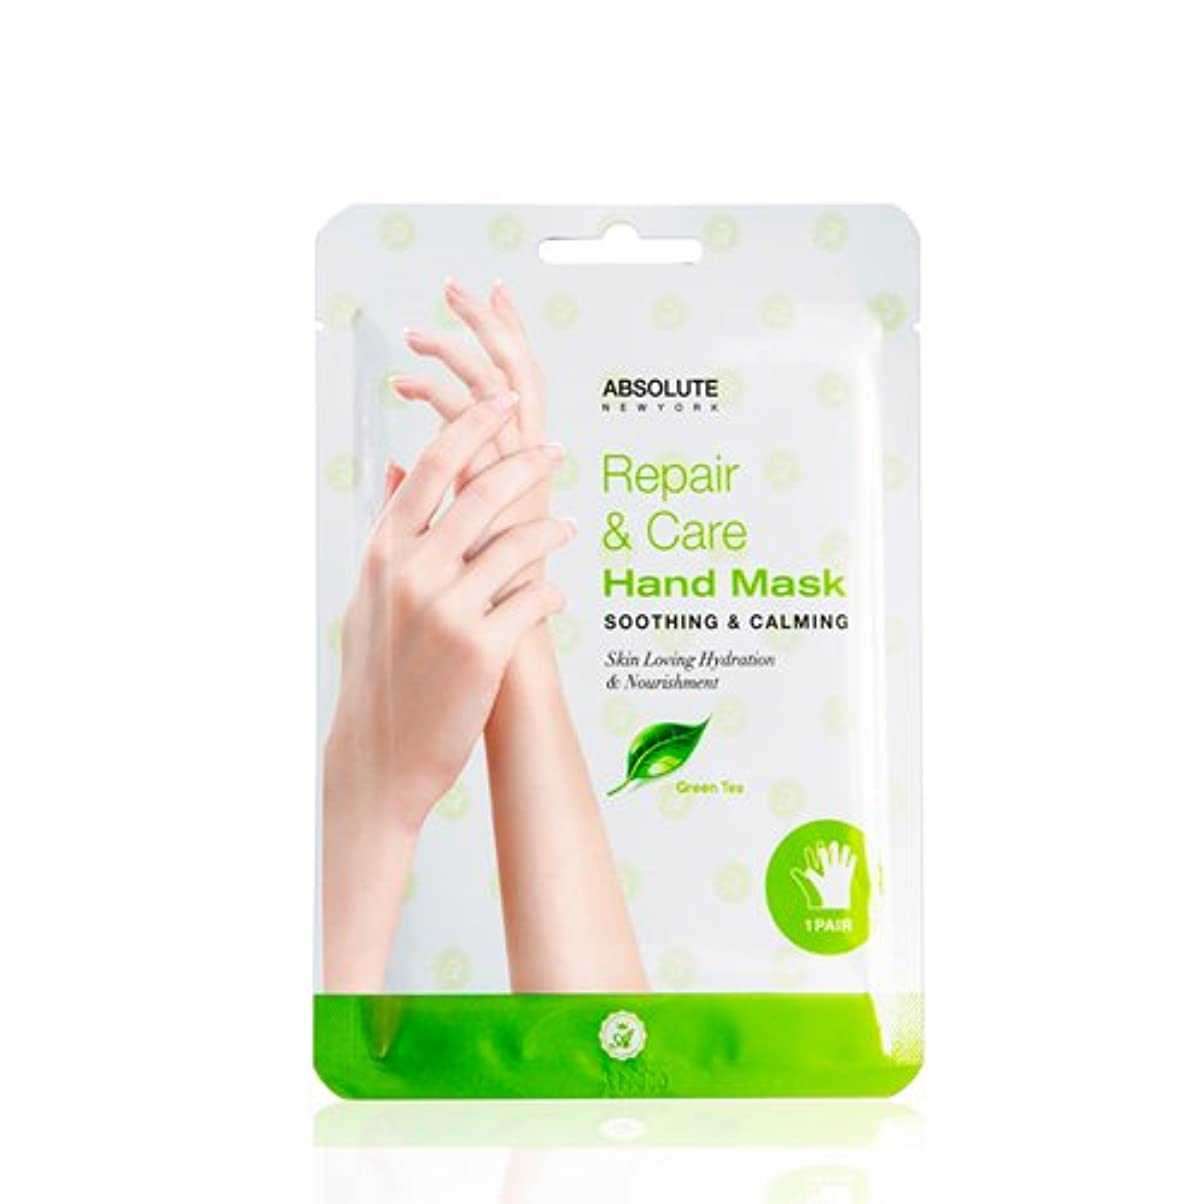 バクテリア旅客ダニ(3 Pack) Absolute Repair & Care Hand Mask - Green Tea (並行輸入品)